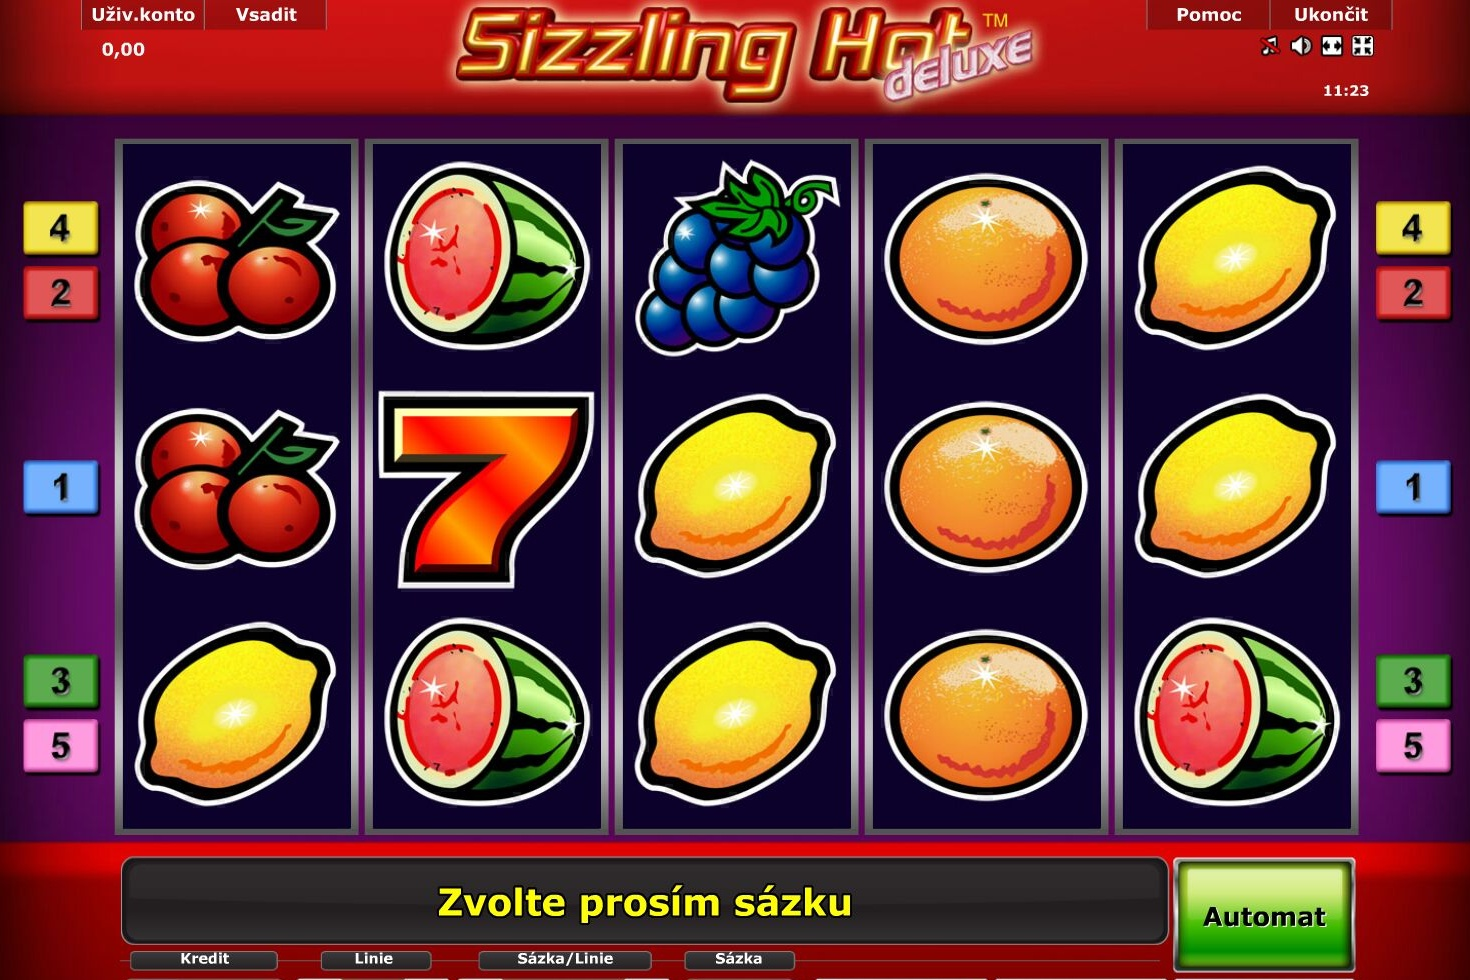 online casino video poker slizling hot